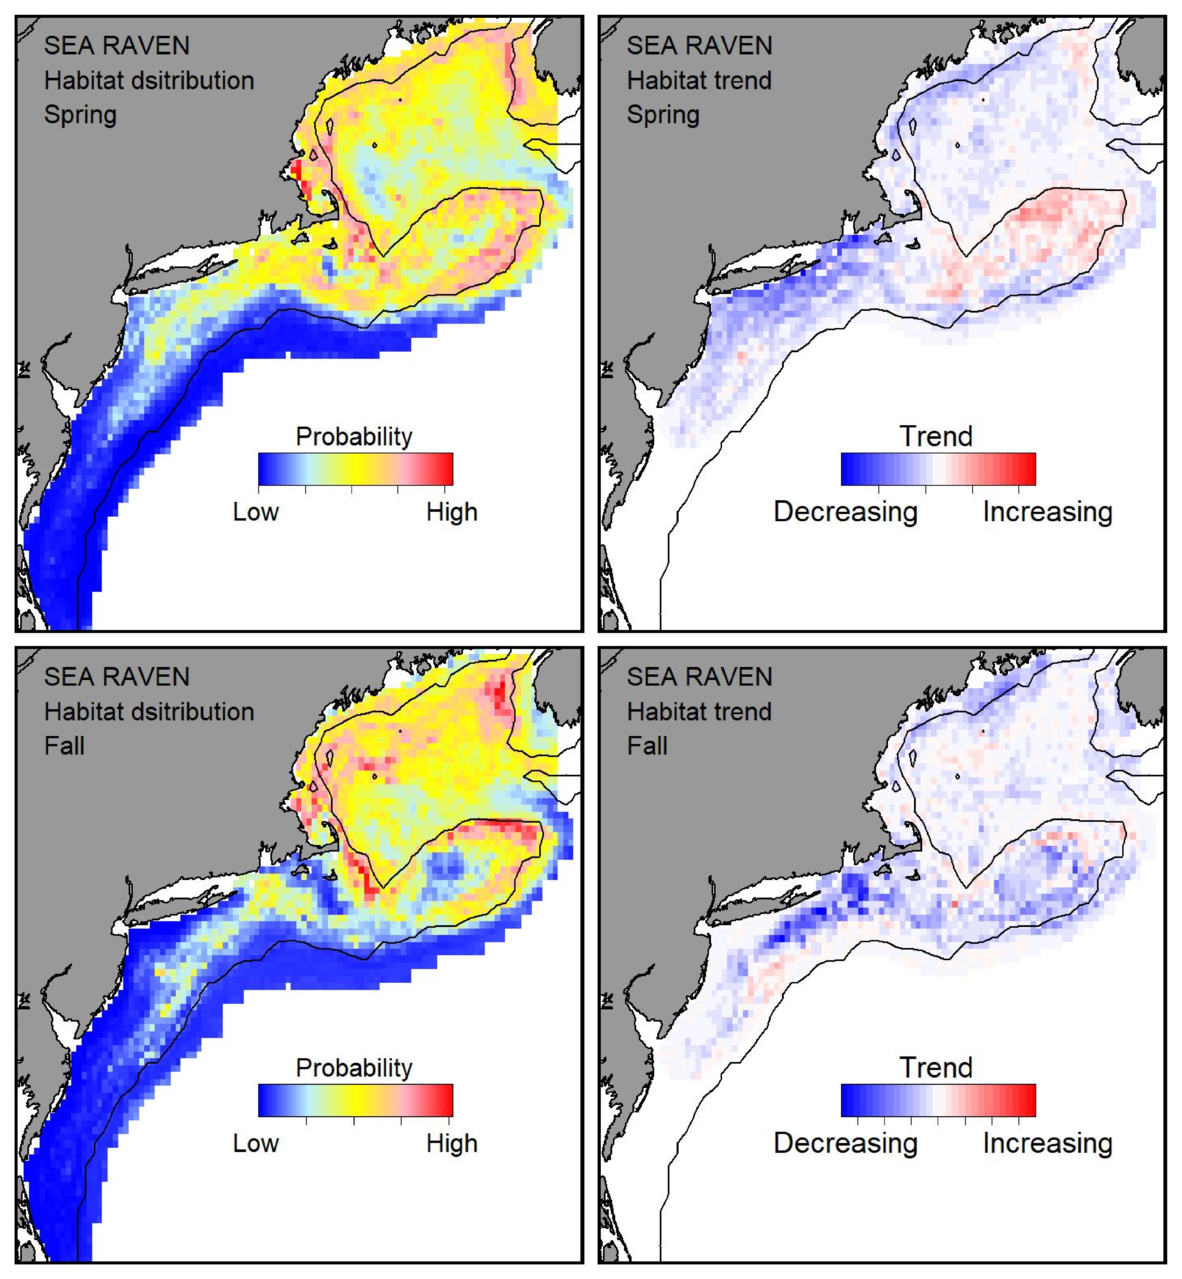 Probable habitat distribution for sea raven showing the highest concentration and increasing trend in the Gulf of Maine during the spring. Bottom row: Probable habitat distribution for sea raven showing the highest concentration and increasing trend in the Gulf of Maine during the fall.